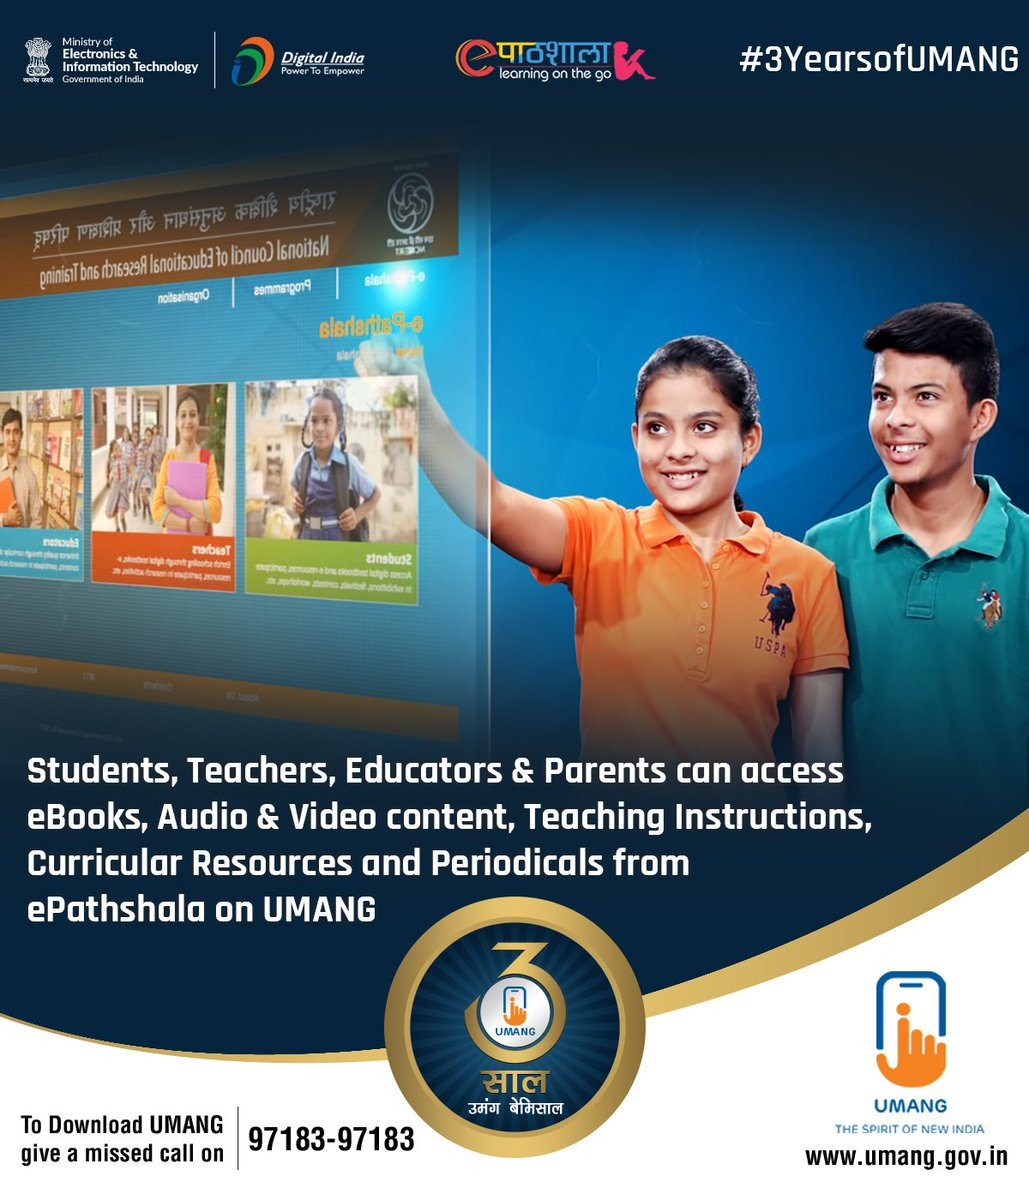 """Through the Digital Learning Platform """"#ePathshala"""" on #UMANG, students, teachers, educators and parents can access numerous resources in multiple languages, easily and at their own convenience. #3yearsofUMANG @GoI_MeitY @SanjayDhotreMP @rsprasad @UmangOfficial_"""